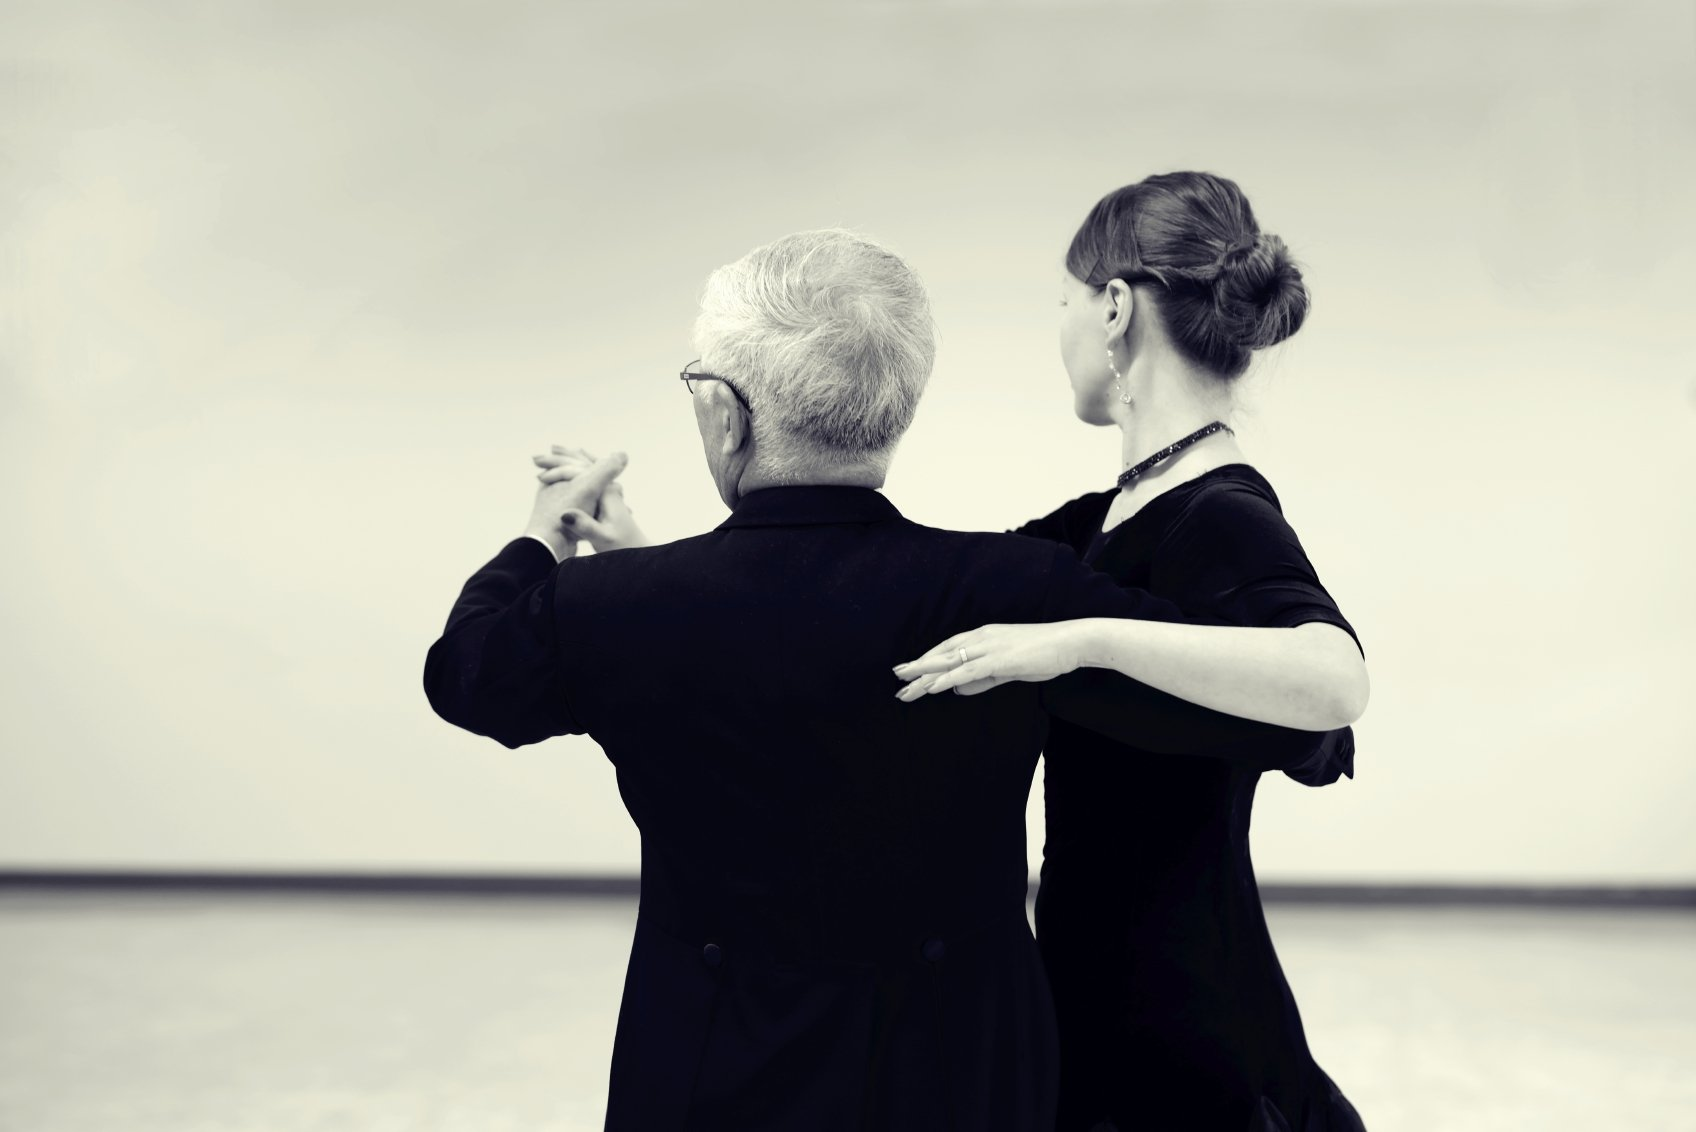 Ballroom dancing can sometimes look elegant and effortless, but there are some unspoken rules of etiquette that should always be observed.